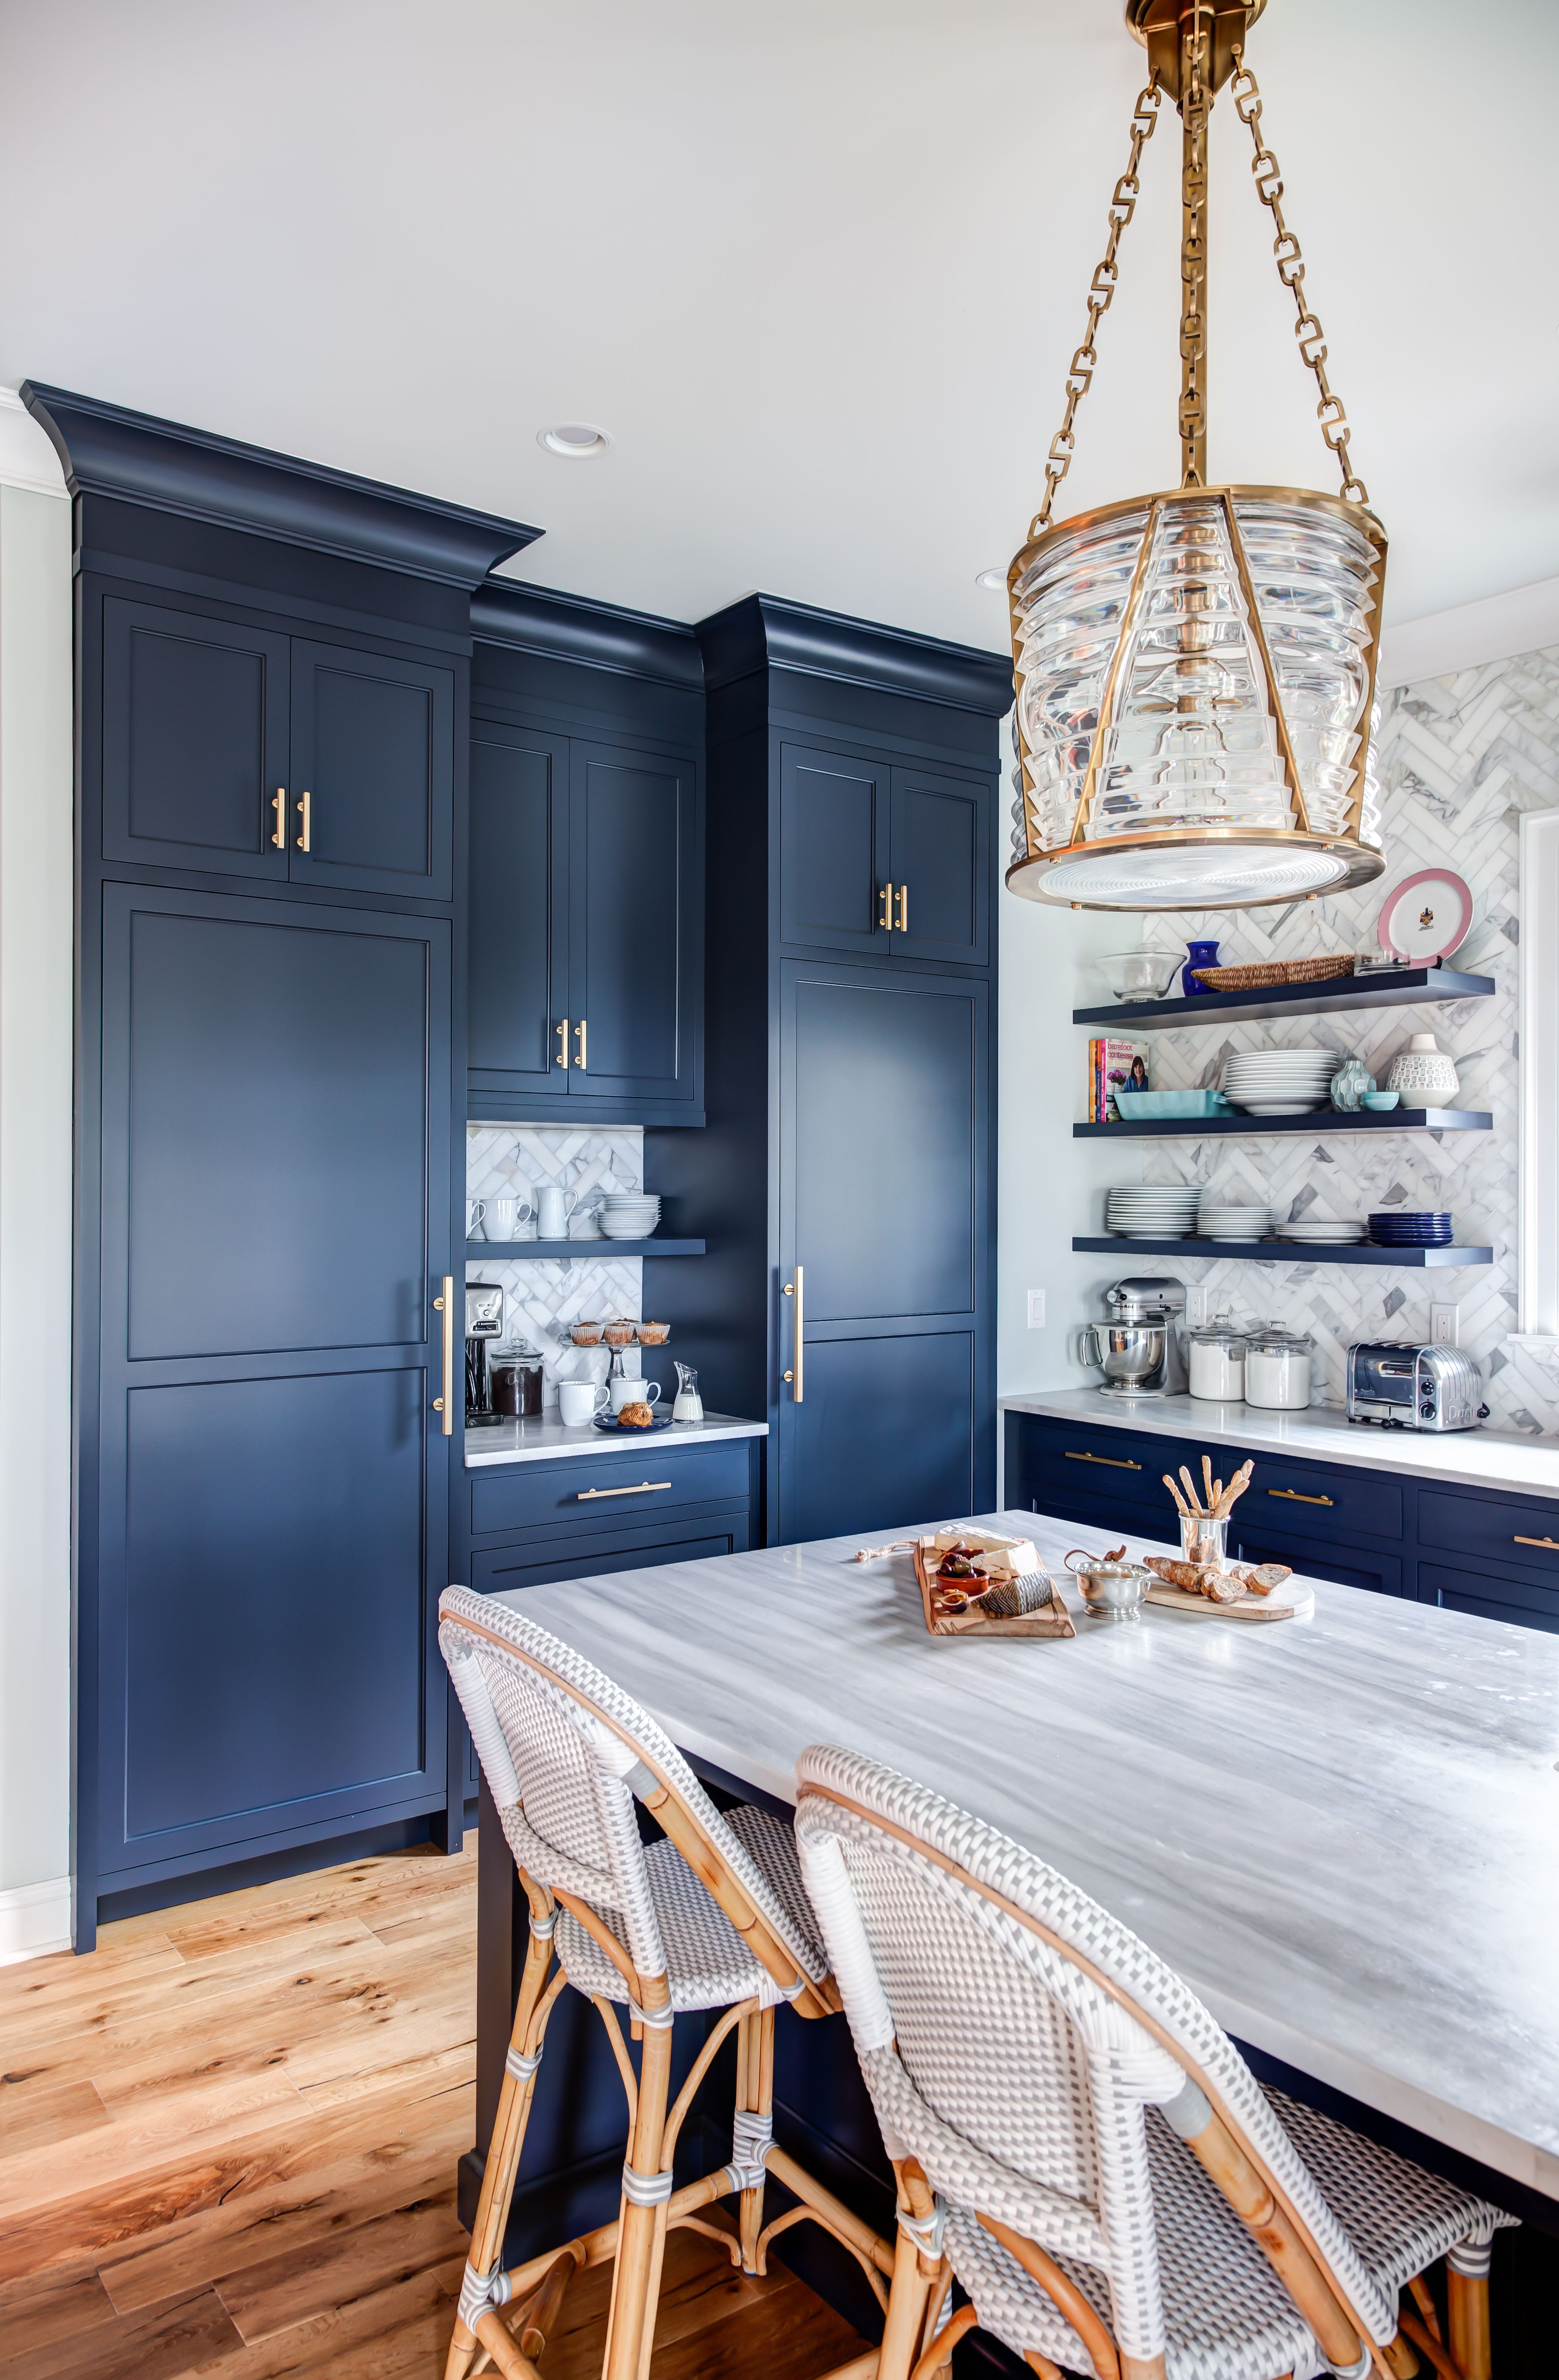 Navy Blue Floor To Ceiling Cabinets With Wood Floors Kitchen Trends Floor To Ceiling Cabinets Home